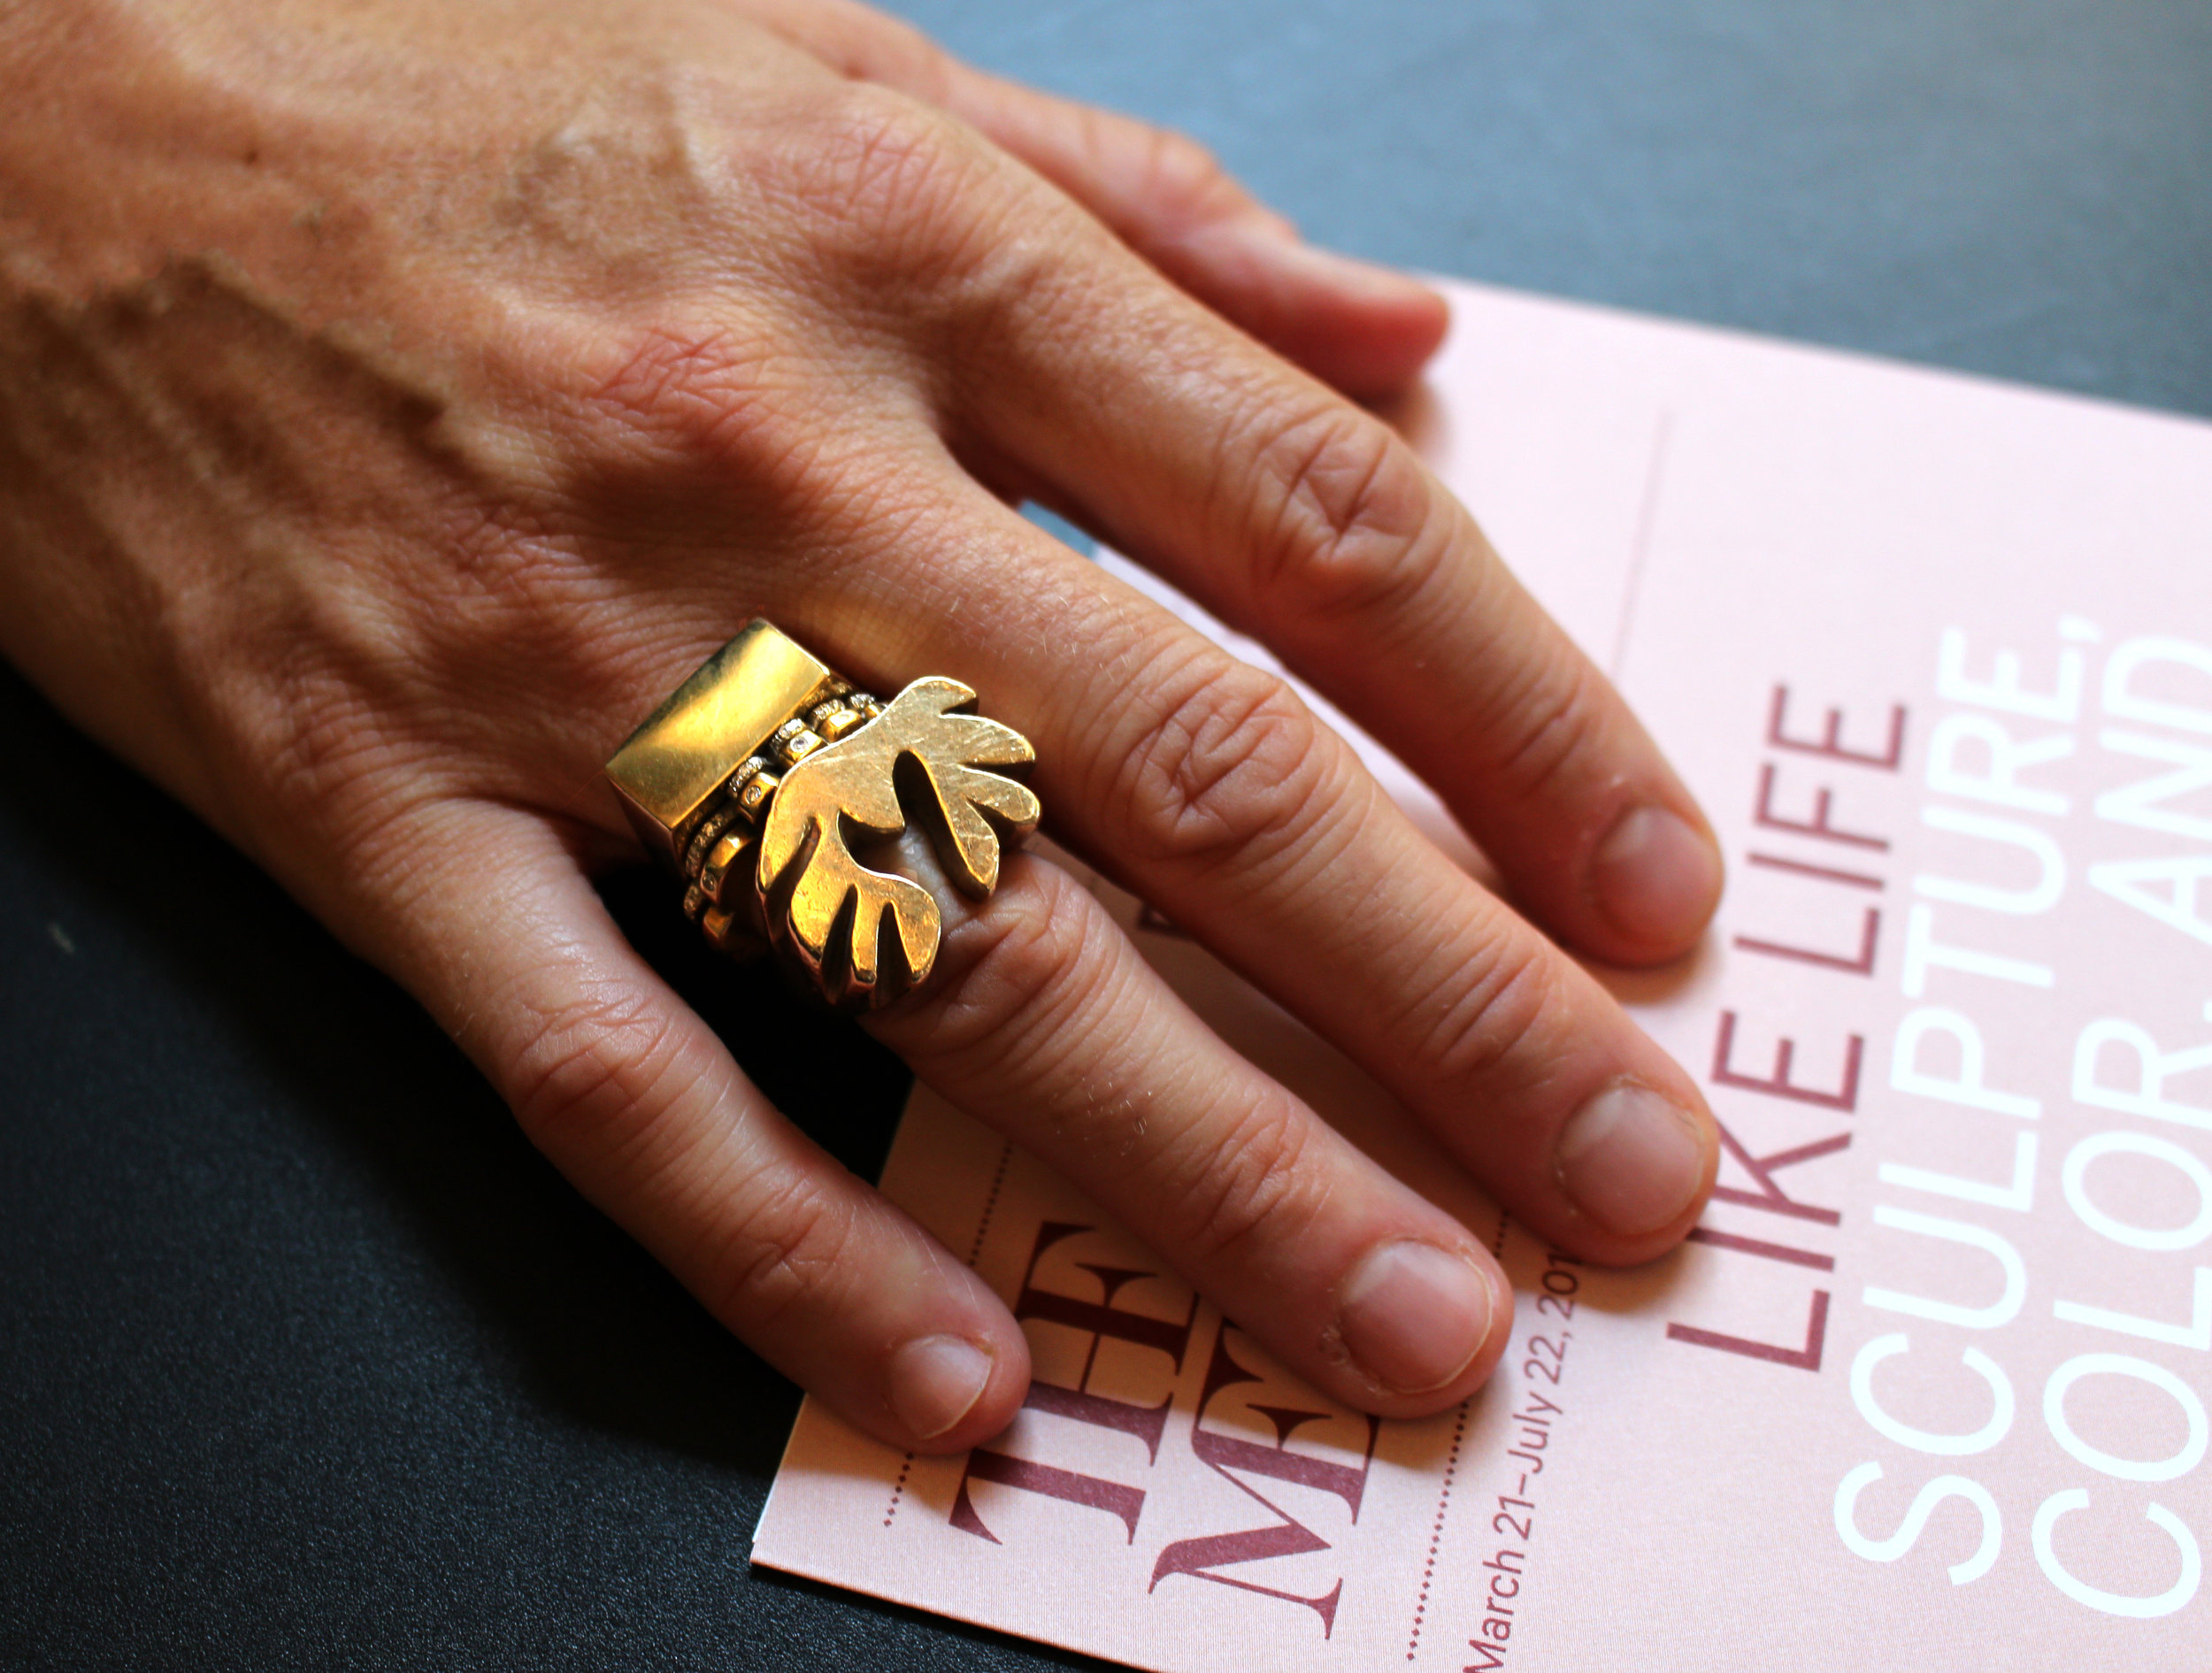 Jessica Biales with her Block signet, Mimosa rings and Antler ring, inspired by Matisse.